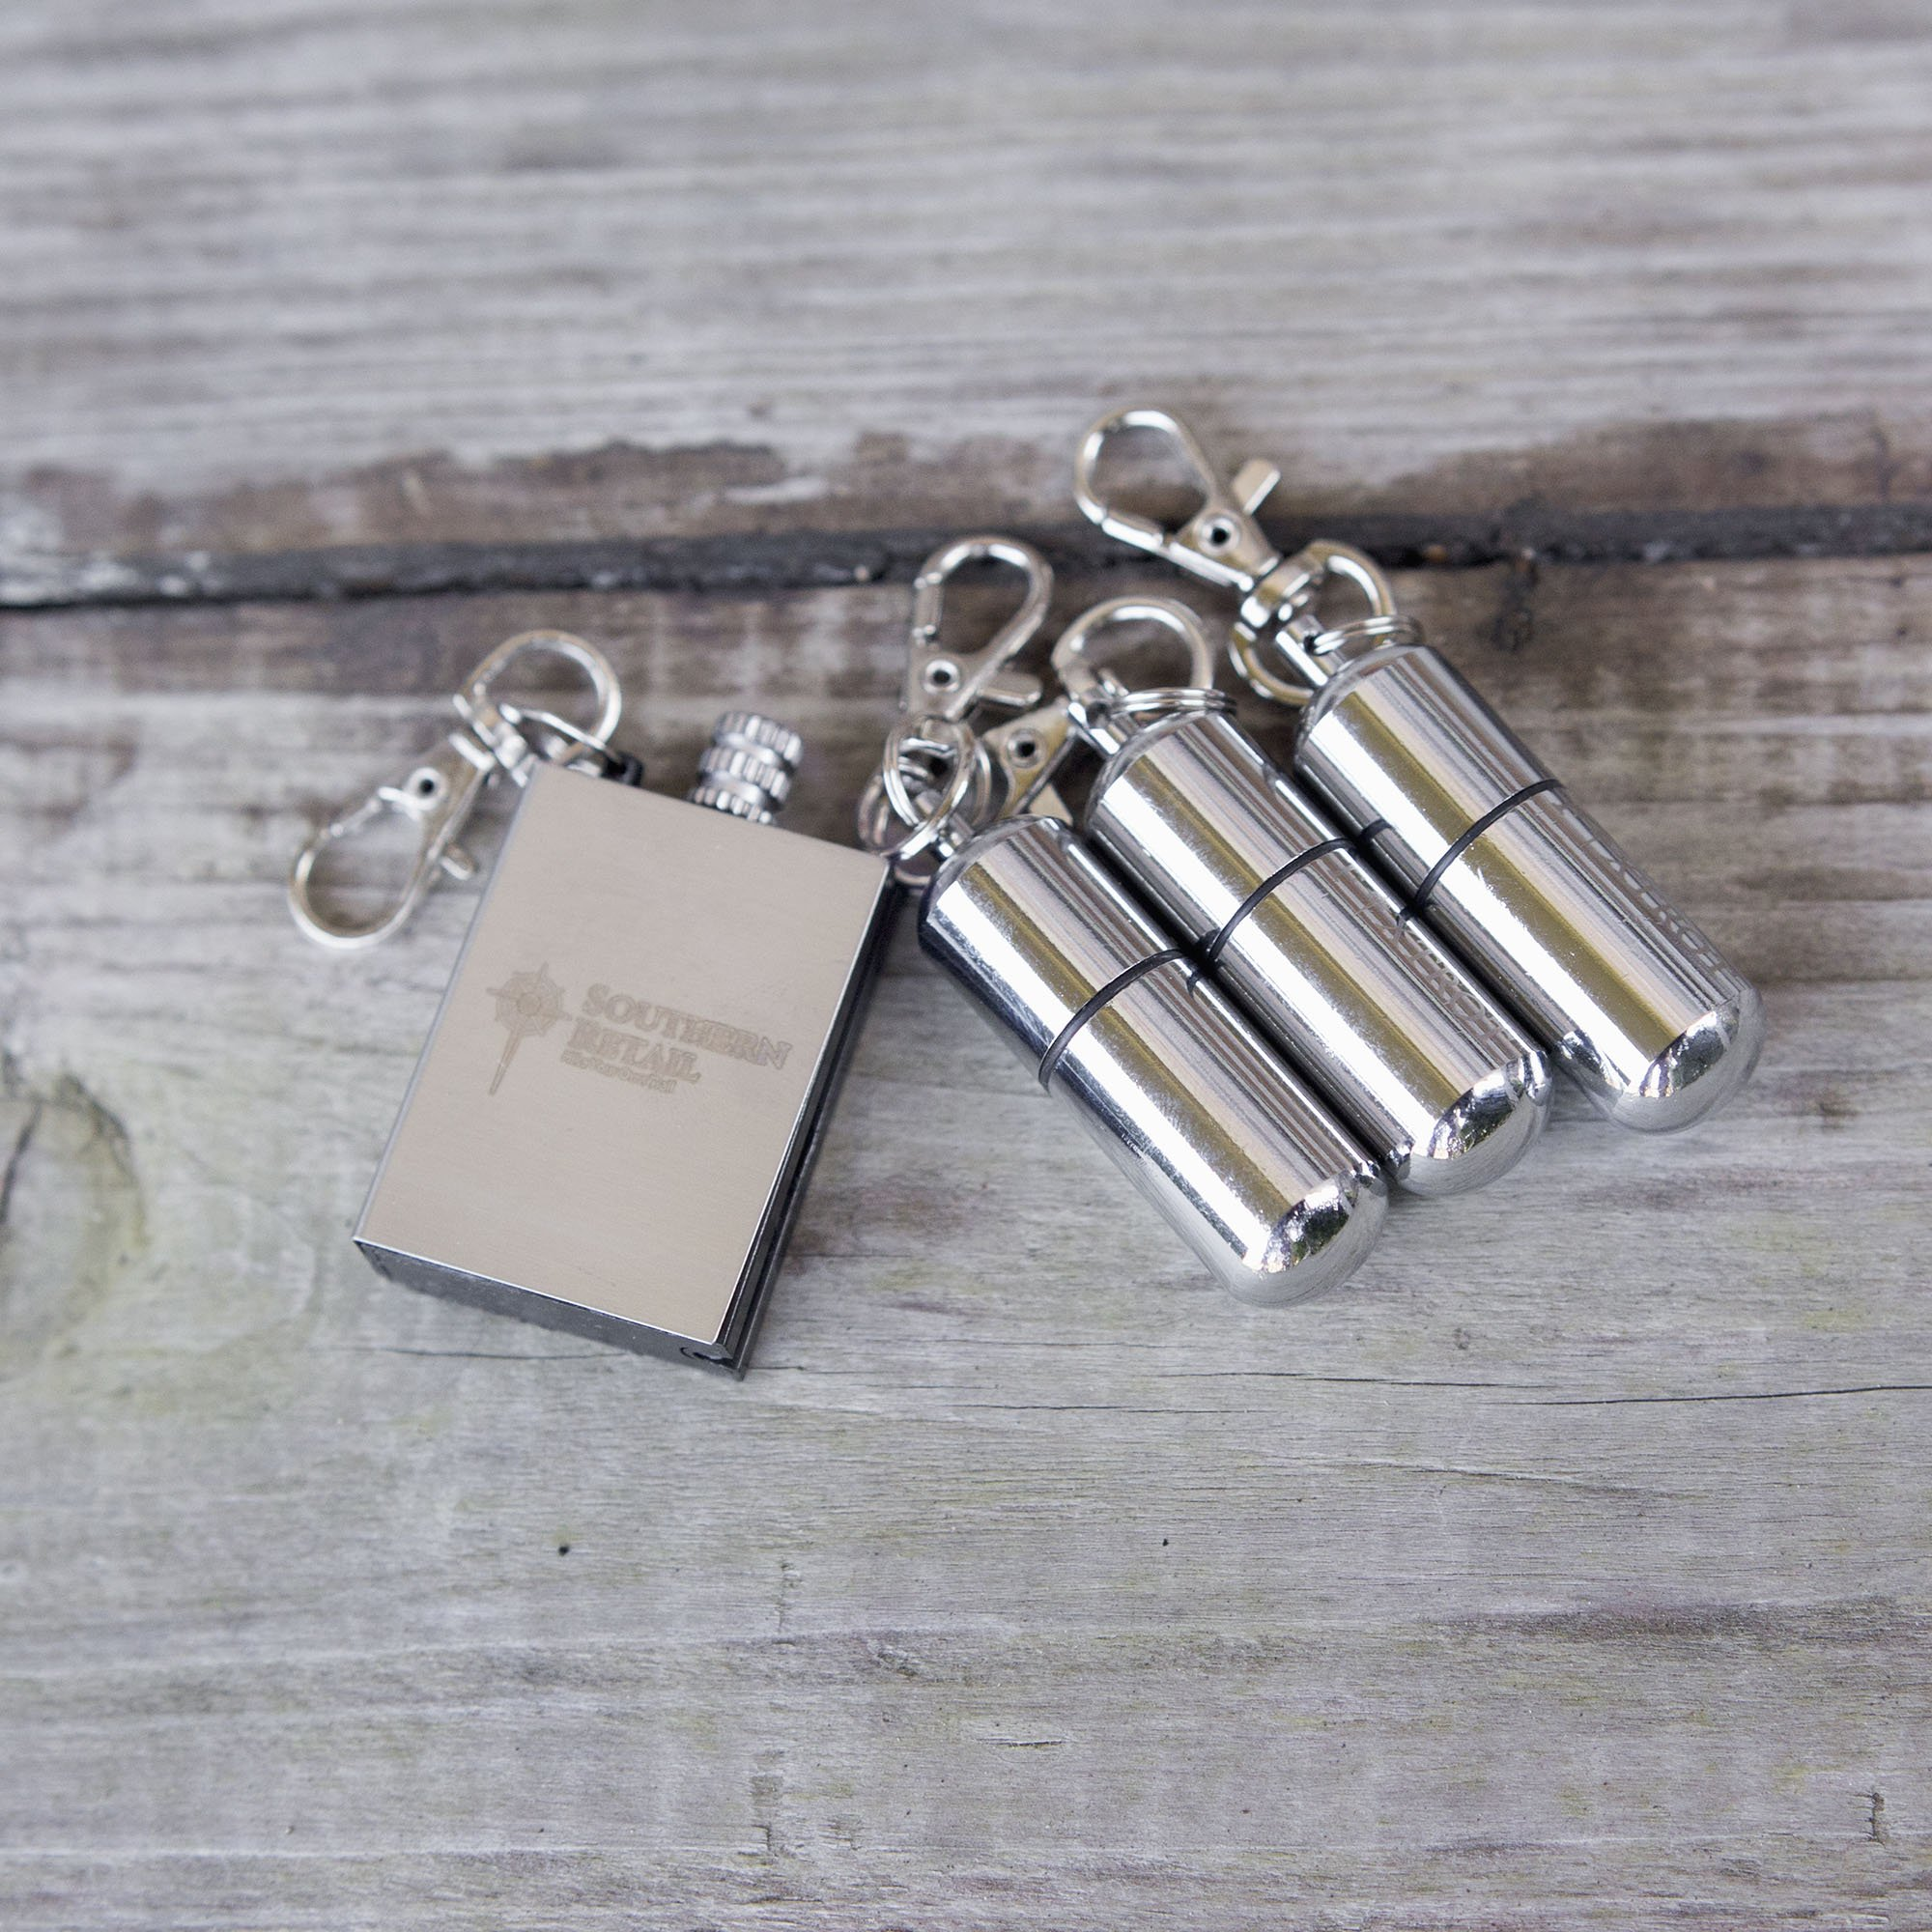 FOXTROT Survival Capsule Peanut Lighter X3 with Waterproof Shell includes Reusable Stainless Steel Matchbox Flint Striker by FOXTROT (Image #6)